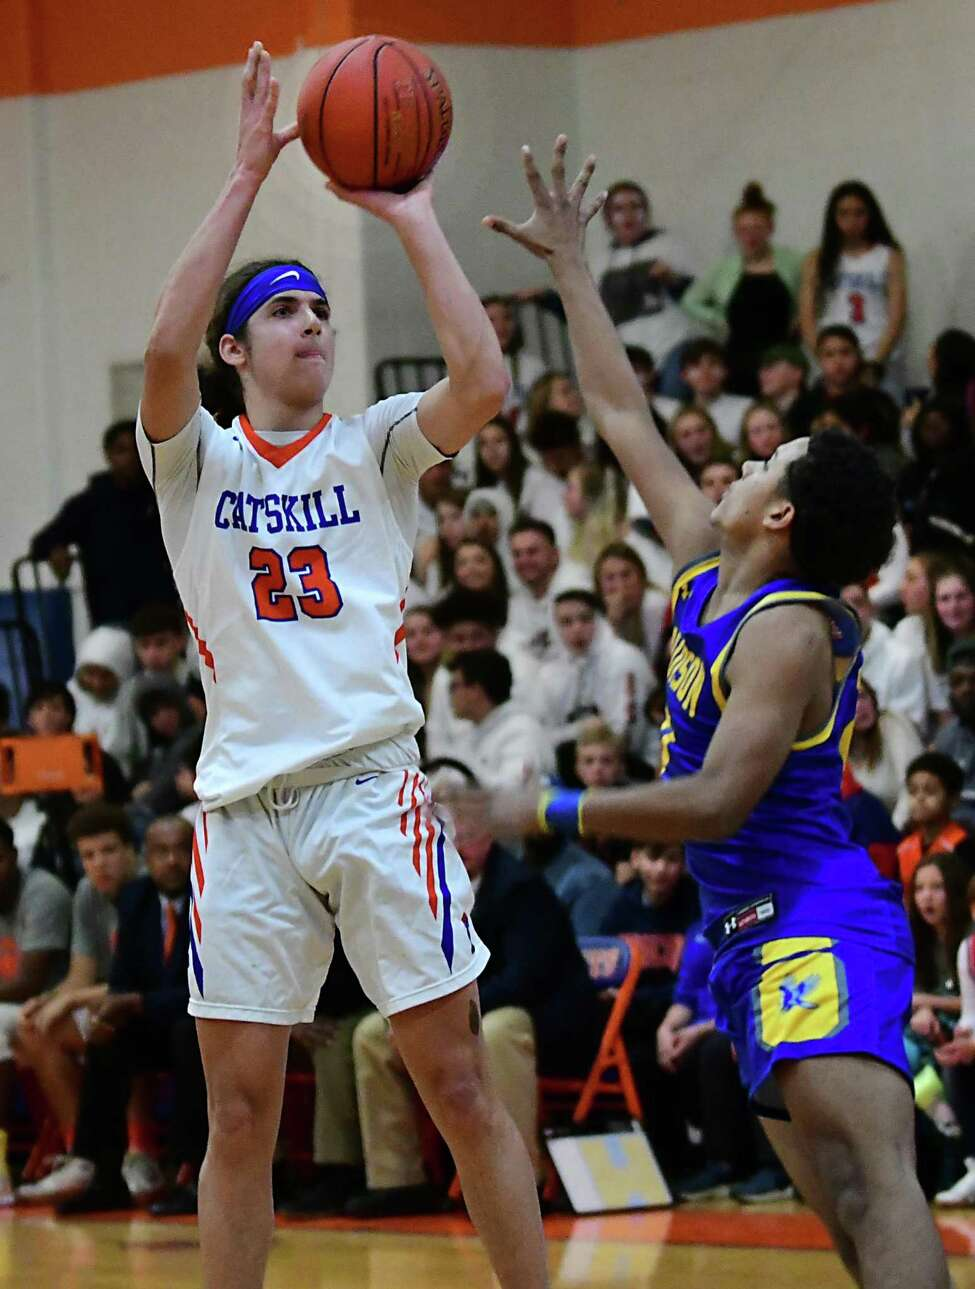 Catskill's Lavon Fernandez puts up a shot against Hudson during a basketball game on Tuesday, Dec. 10, 2019 in Catskill, N.Y. (Lori Van Buren/Times Union)